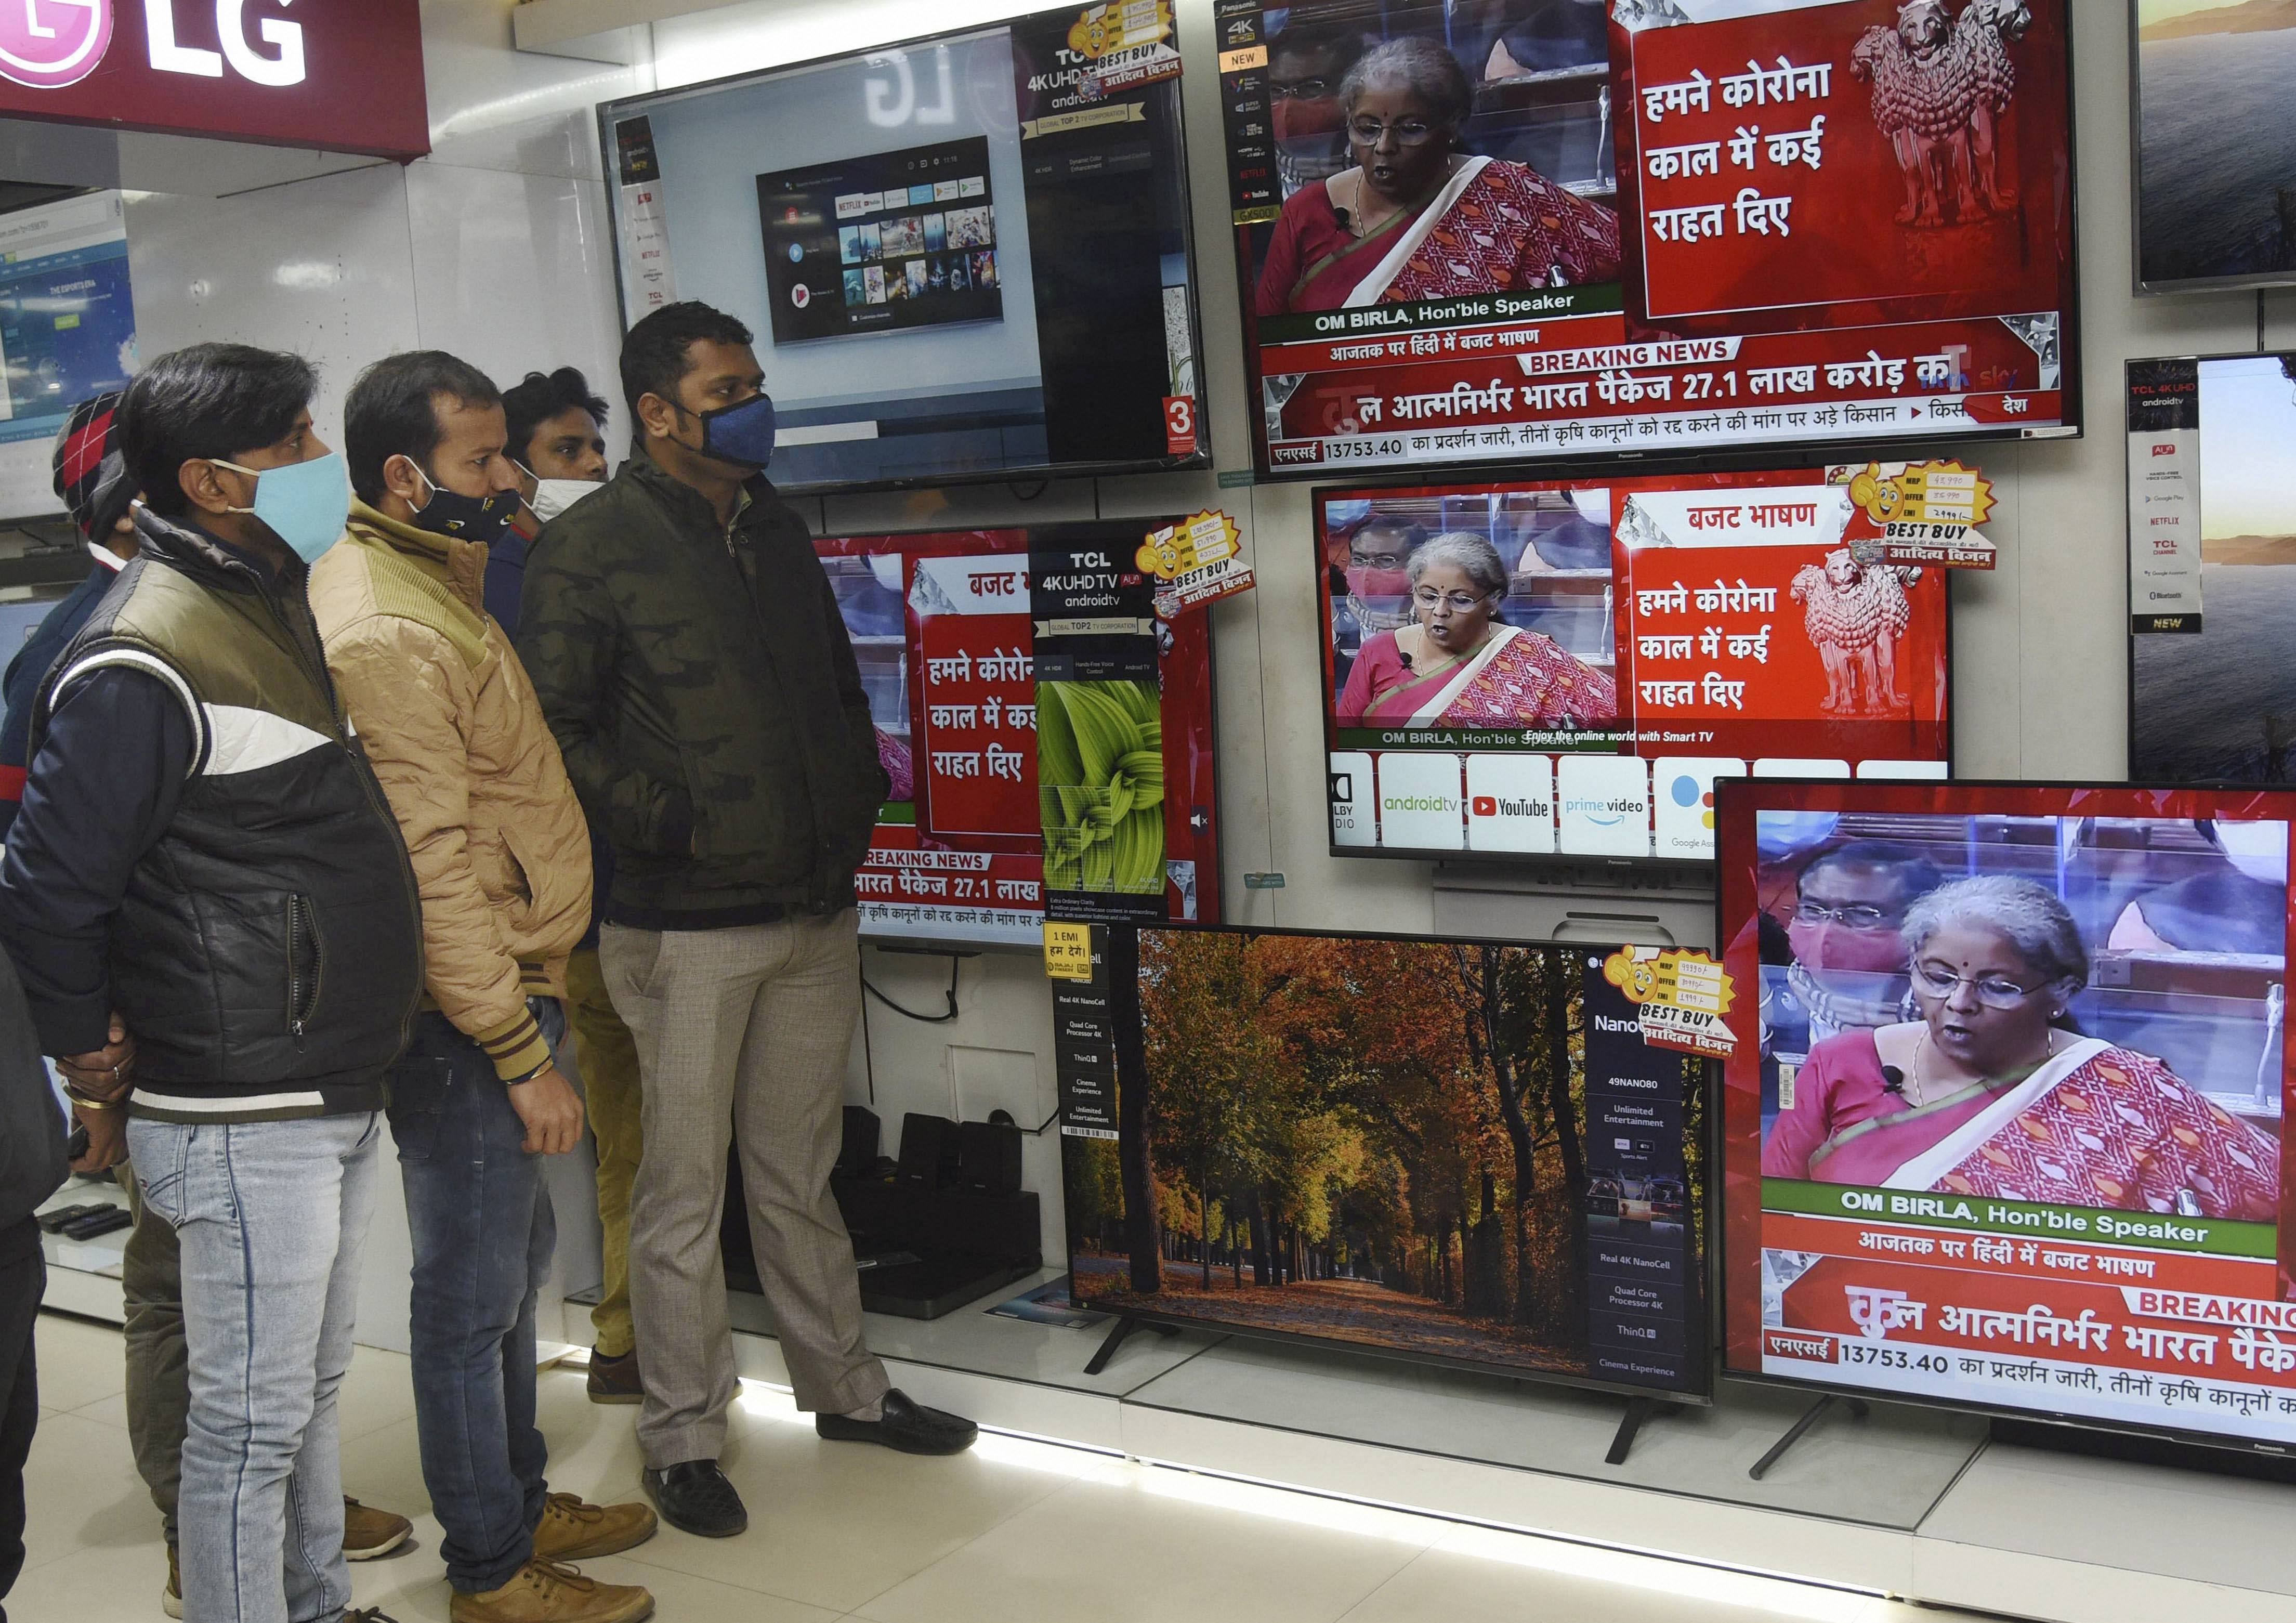 Patna: People watch Finance Minister Nirmala Sitharaman present the Union Budget 2021-21 on television sets, during the Budget Session of Parliament, at an electronics store in Patna, Monday, Feb, 1, 2021. (PTI Photo)(PTI02_01_2021_000061B)